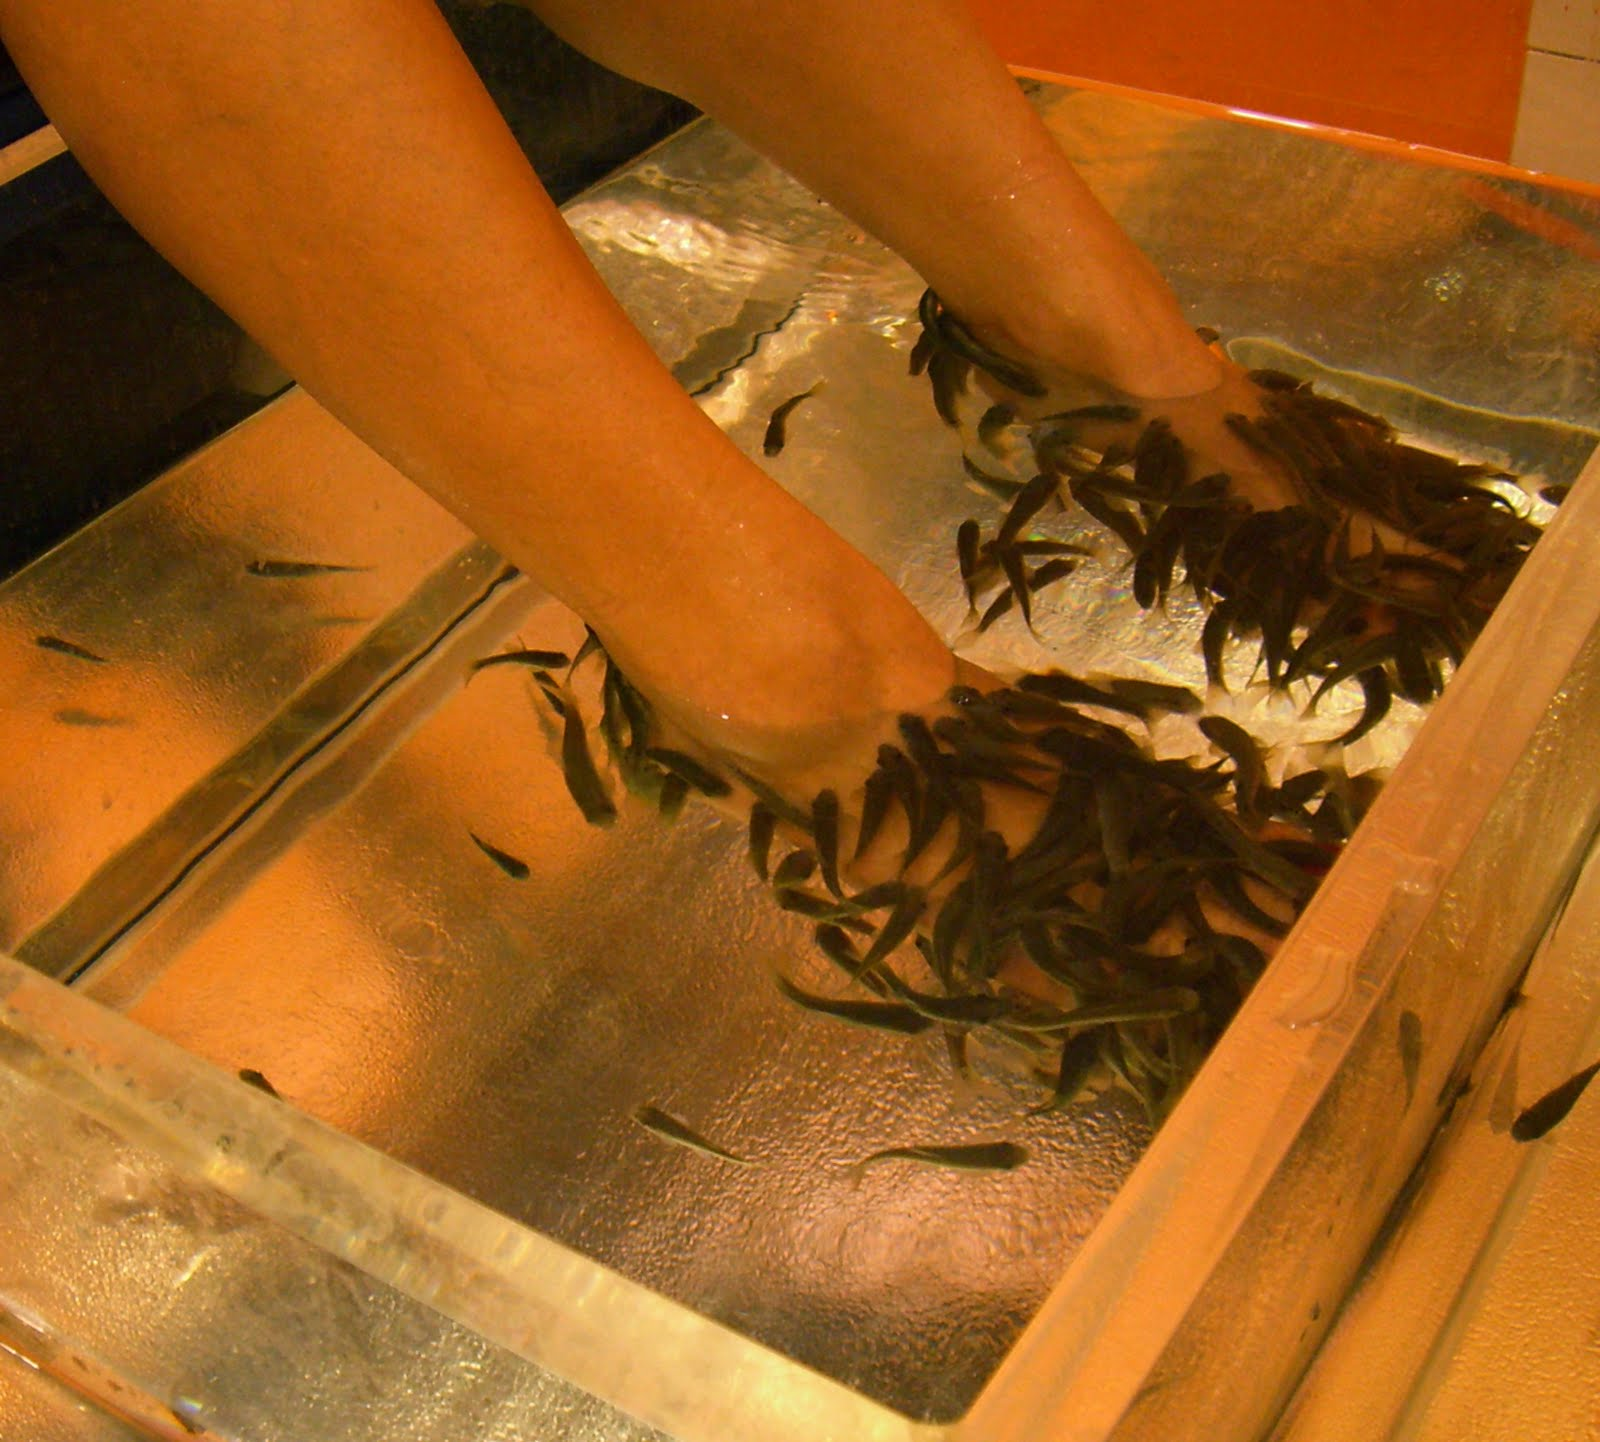 inside the artisan fish pedicure